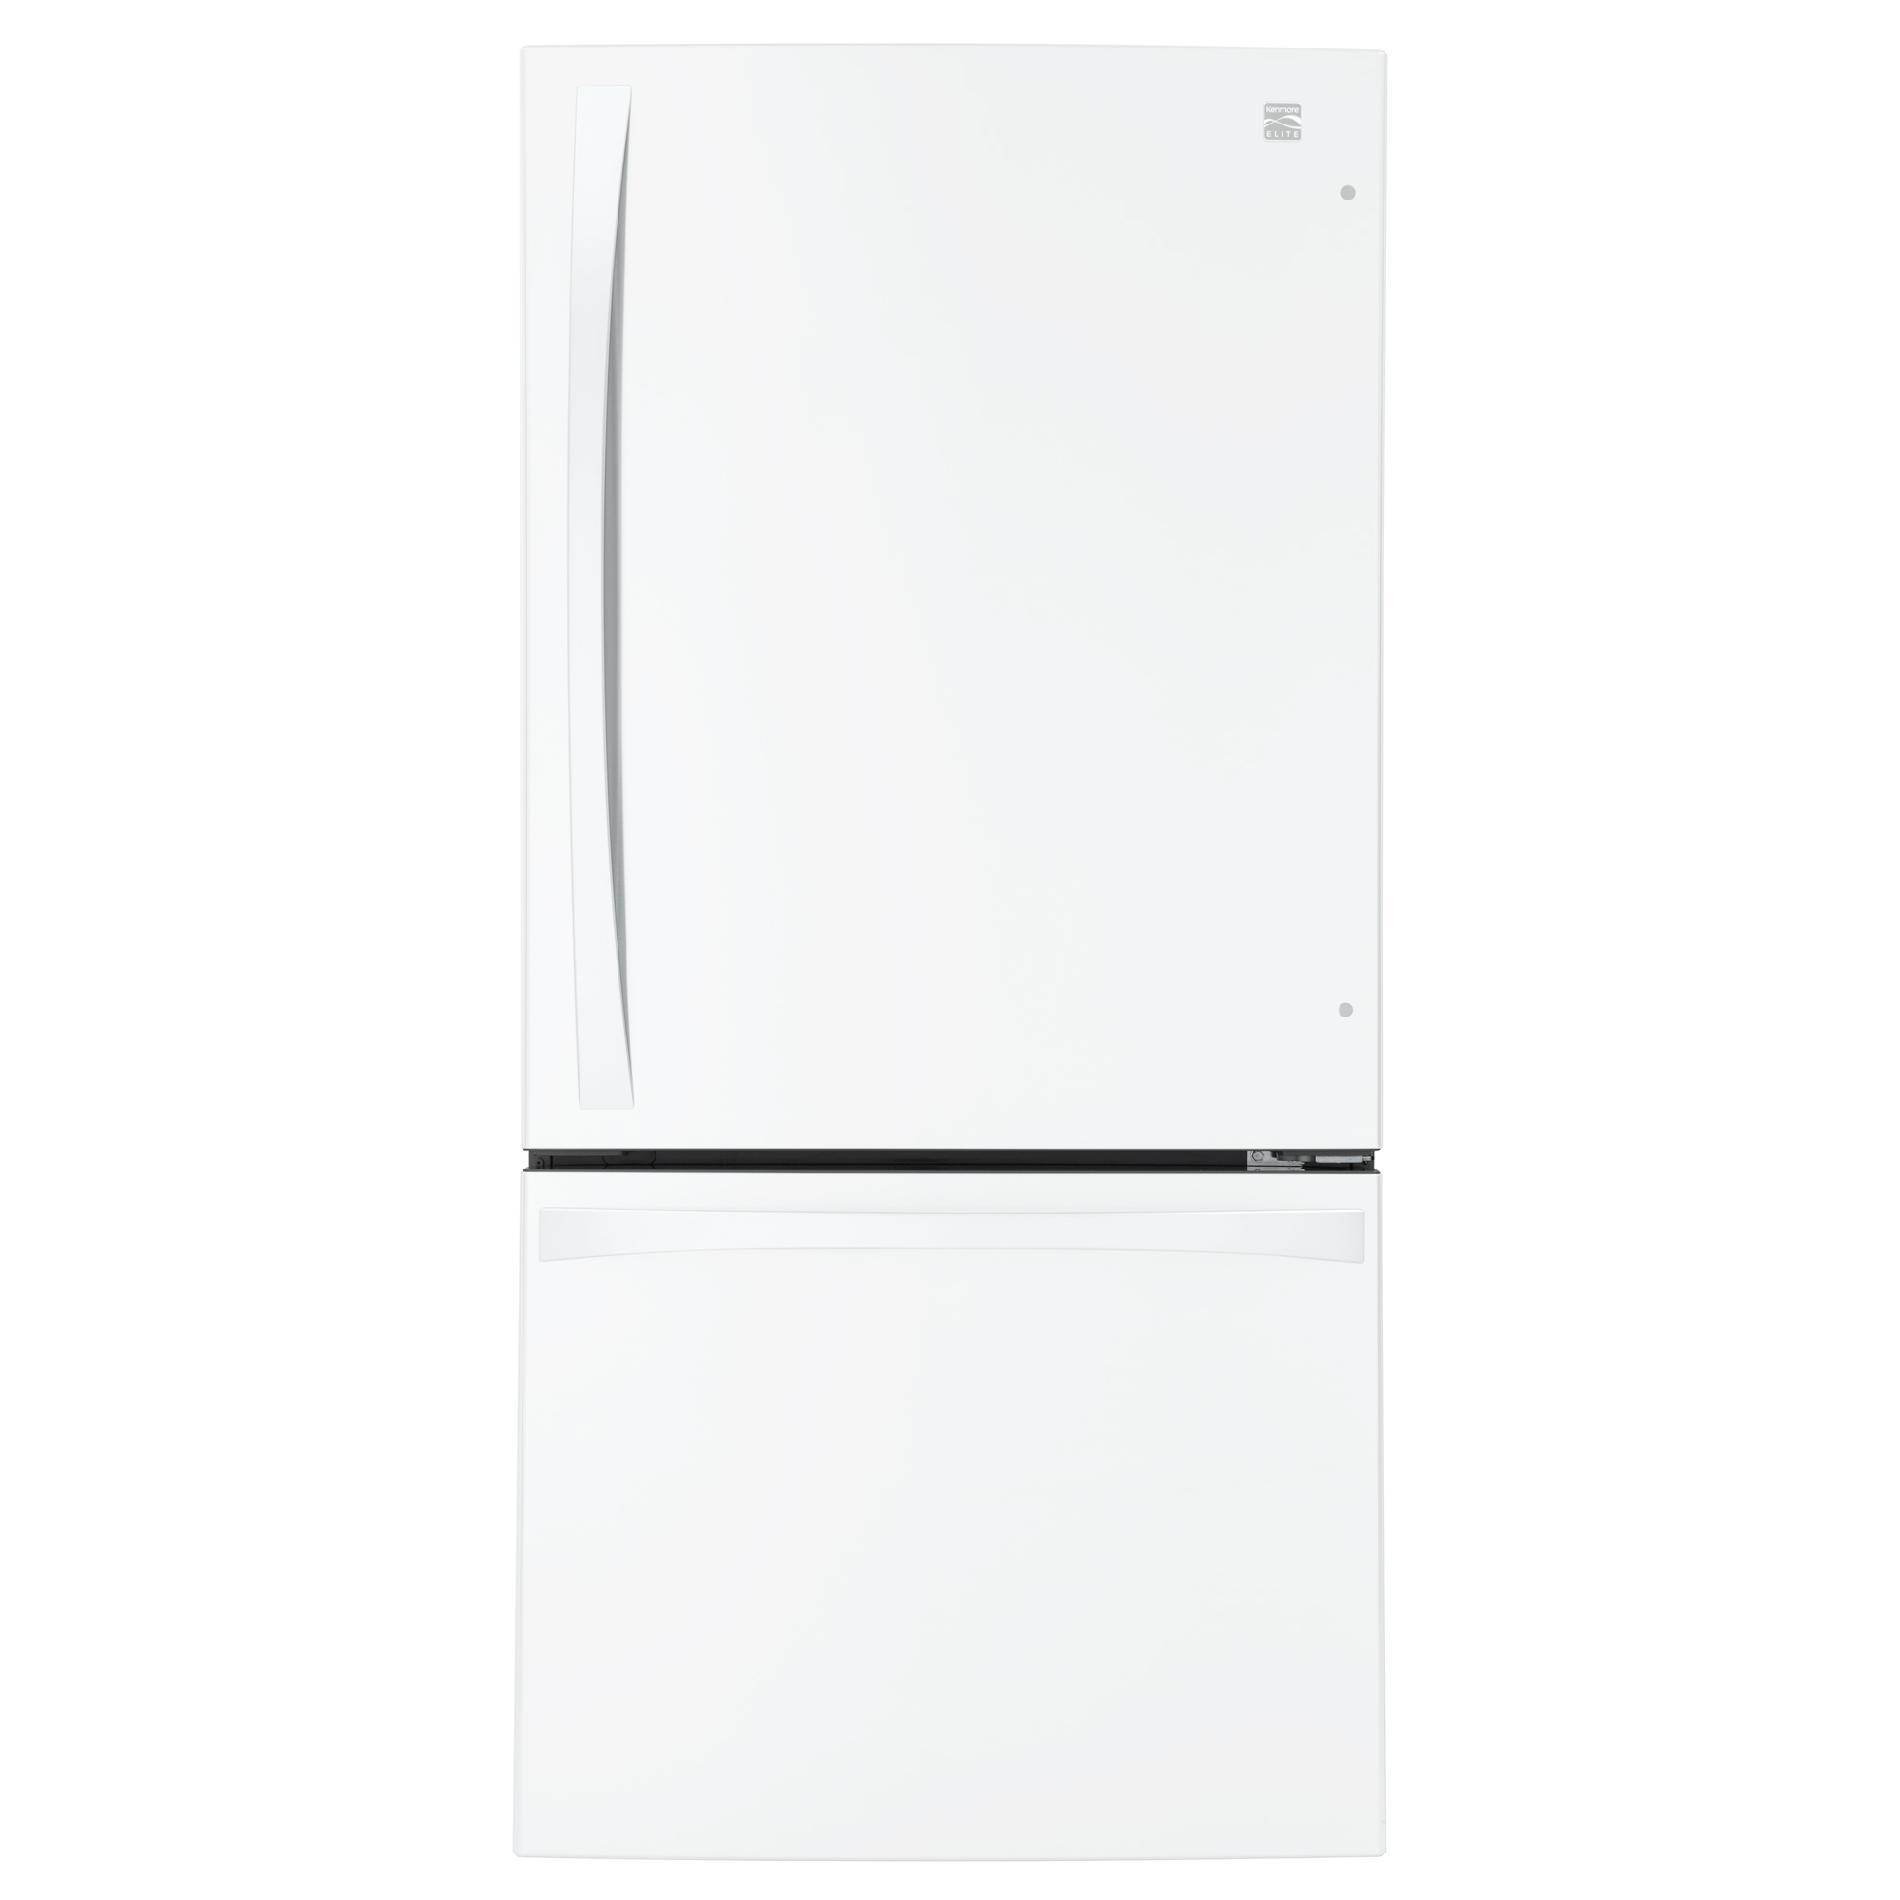 79042-24-1-cu-ft-Bottom-Freezer-Refrigerator-White